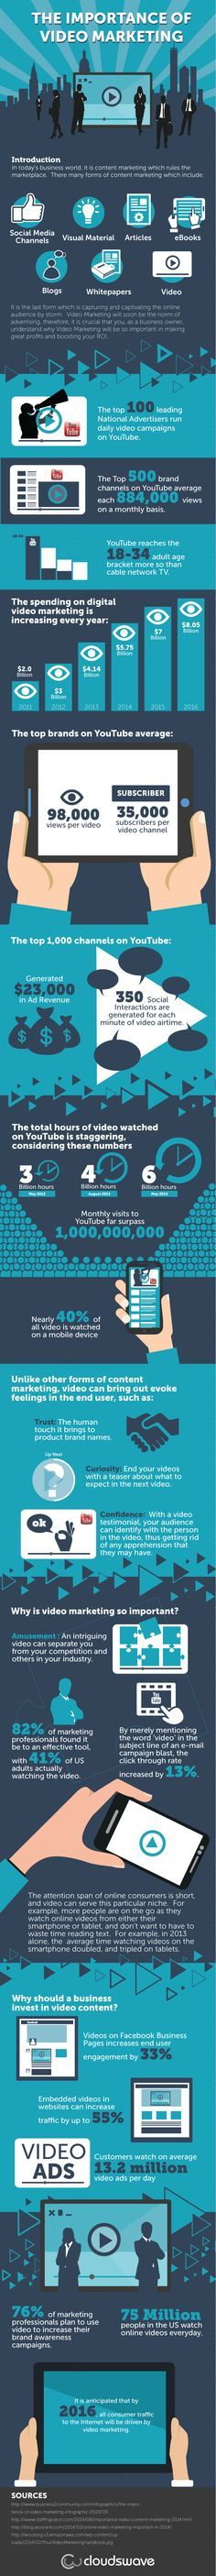 http://social-media-strategy-template.blogspot.com/ The Importance of Video Marketing